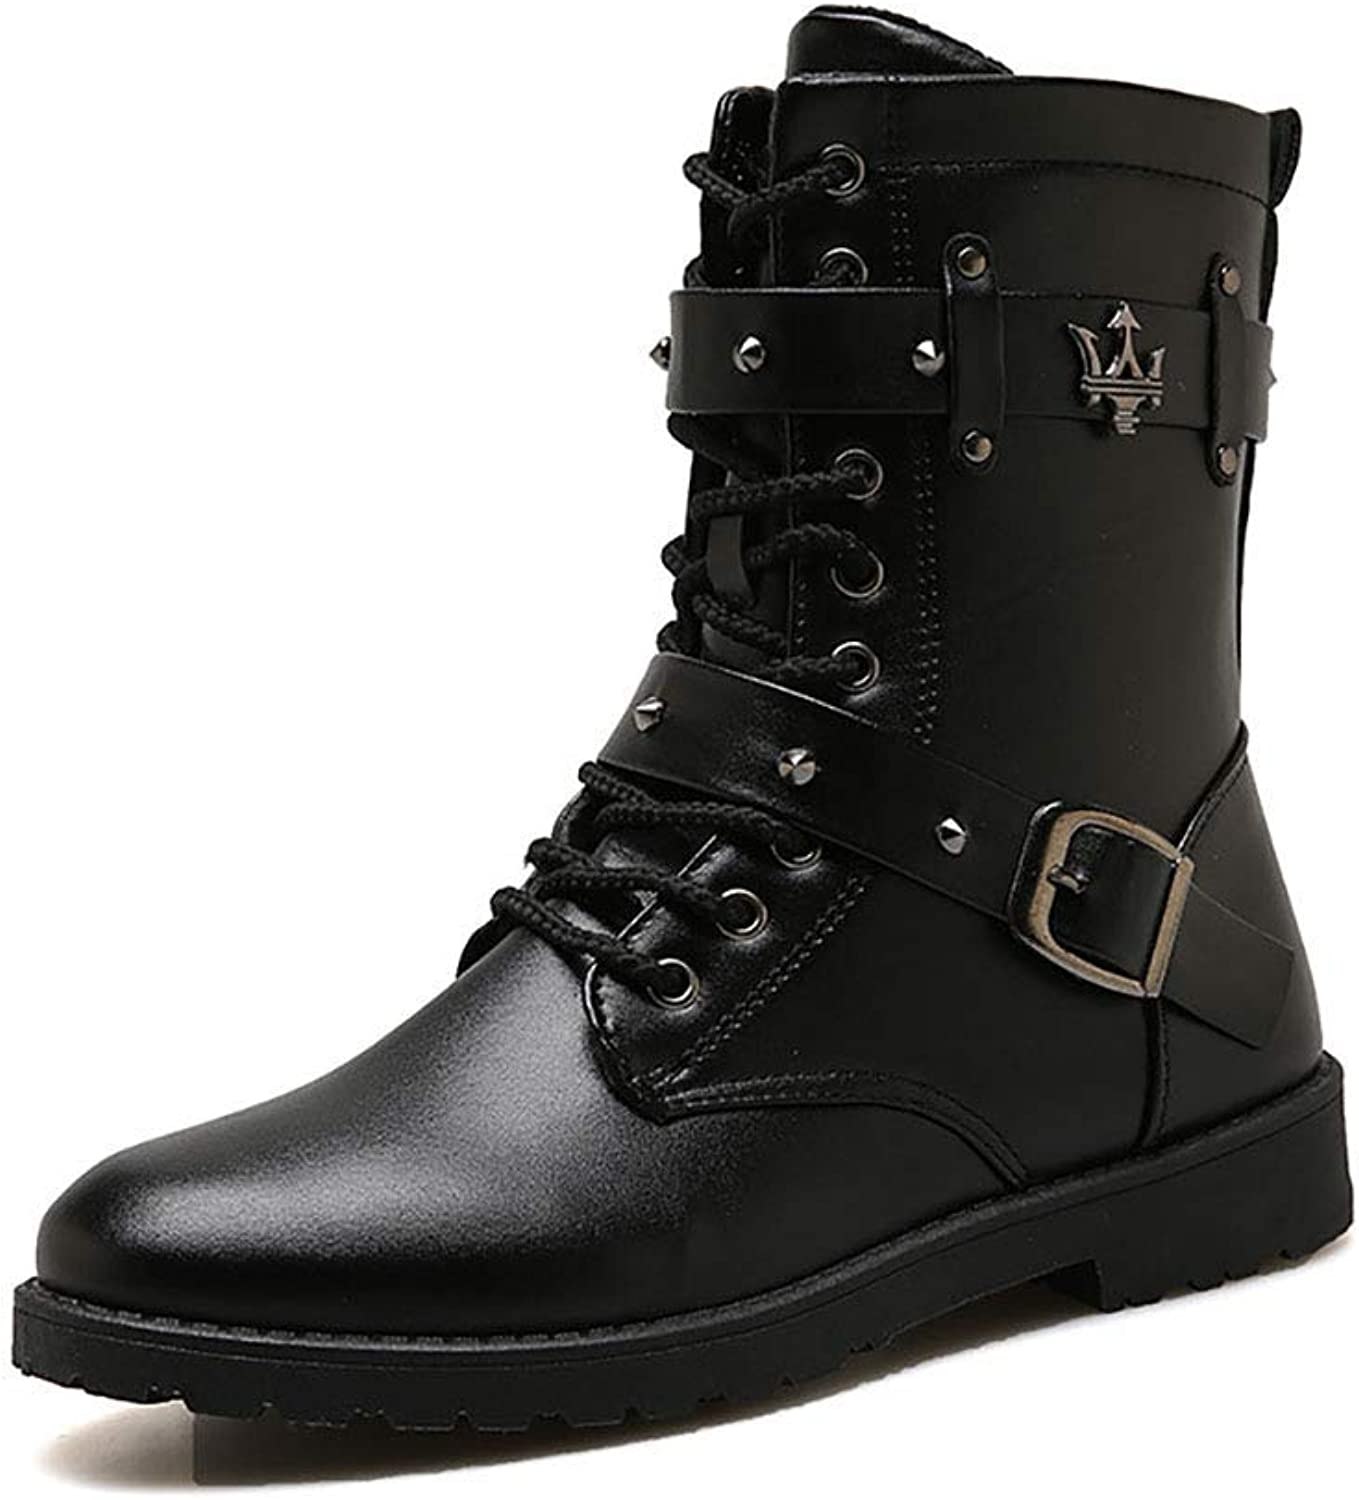 ZHRUI Men's Casual Martin Boots High to Help Leather Waterproof Boots High Tube Youth Locomotive shoes (color   Black, Size   EU42.5 UK8)